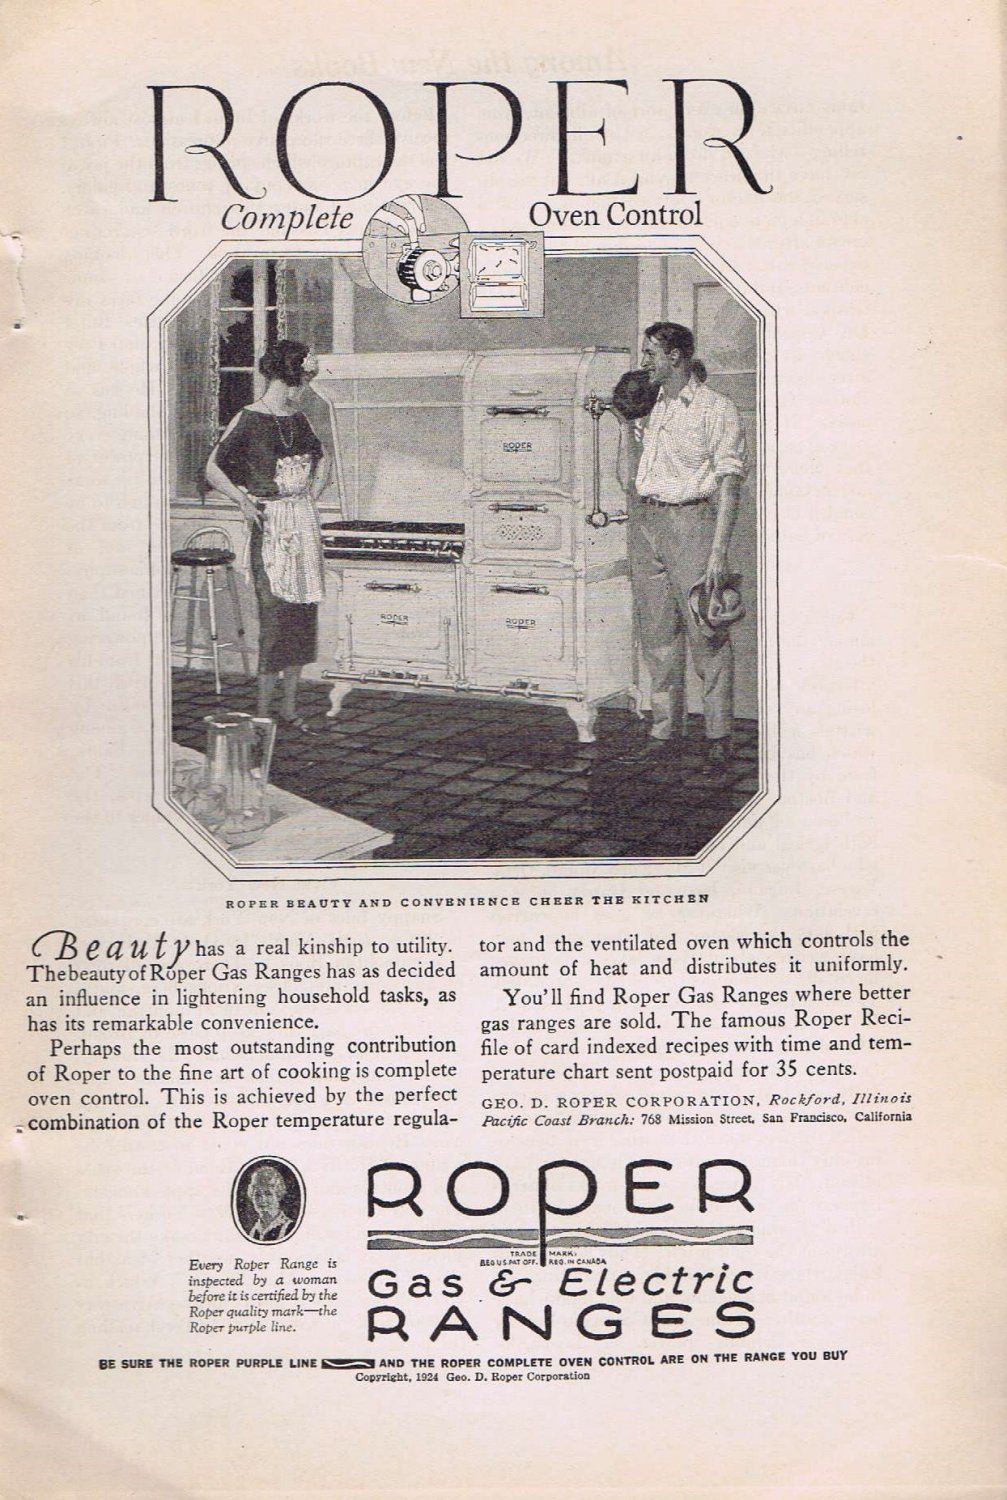 Roper Gas and Electric Ranges 1924 Original Vintage Ad with Complete Oven Control